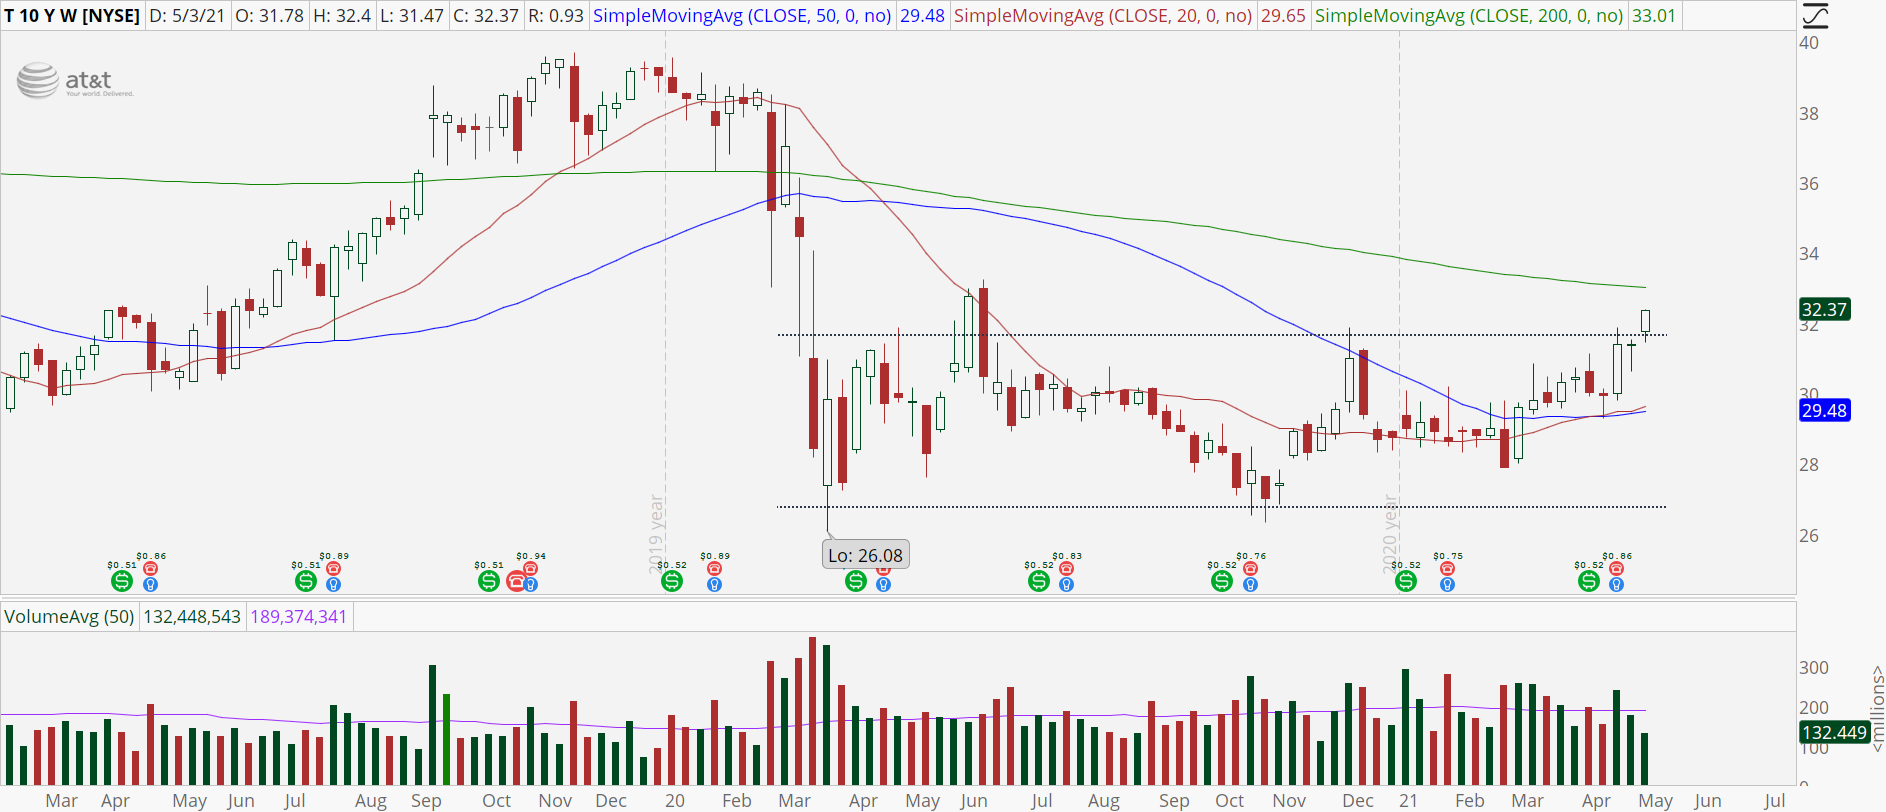 AT&T (T) stock with bullish breakout